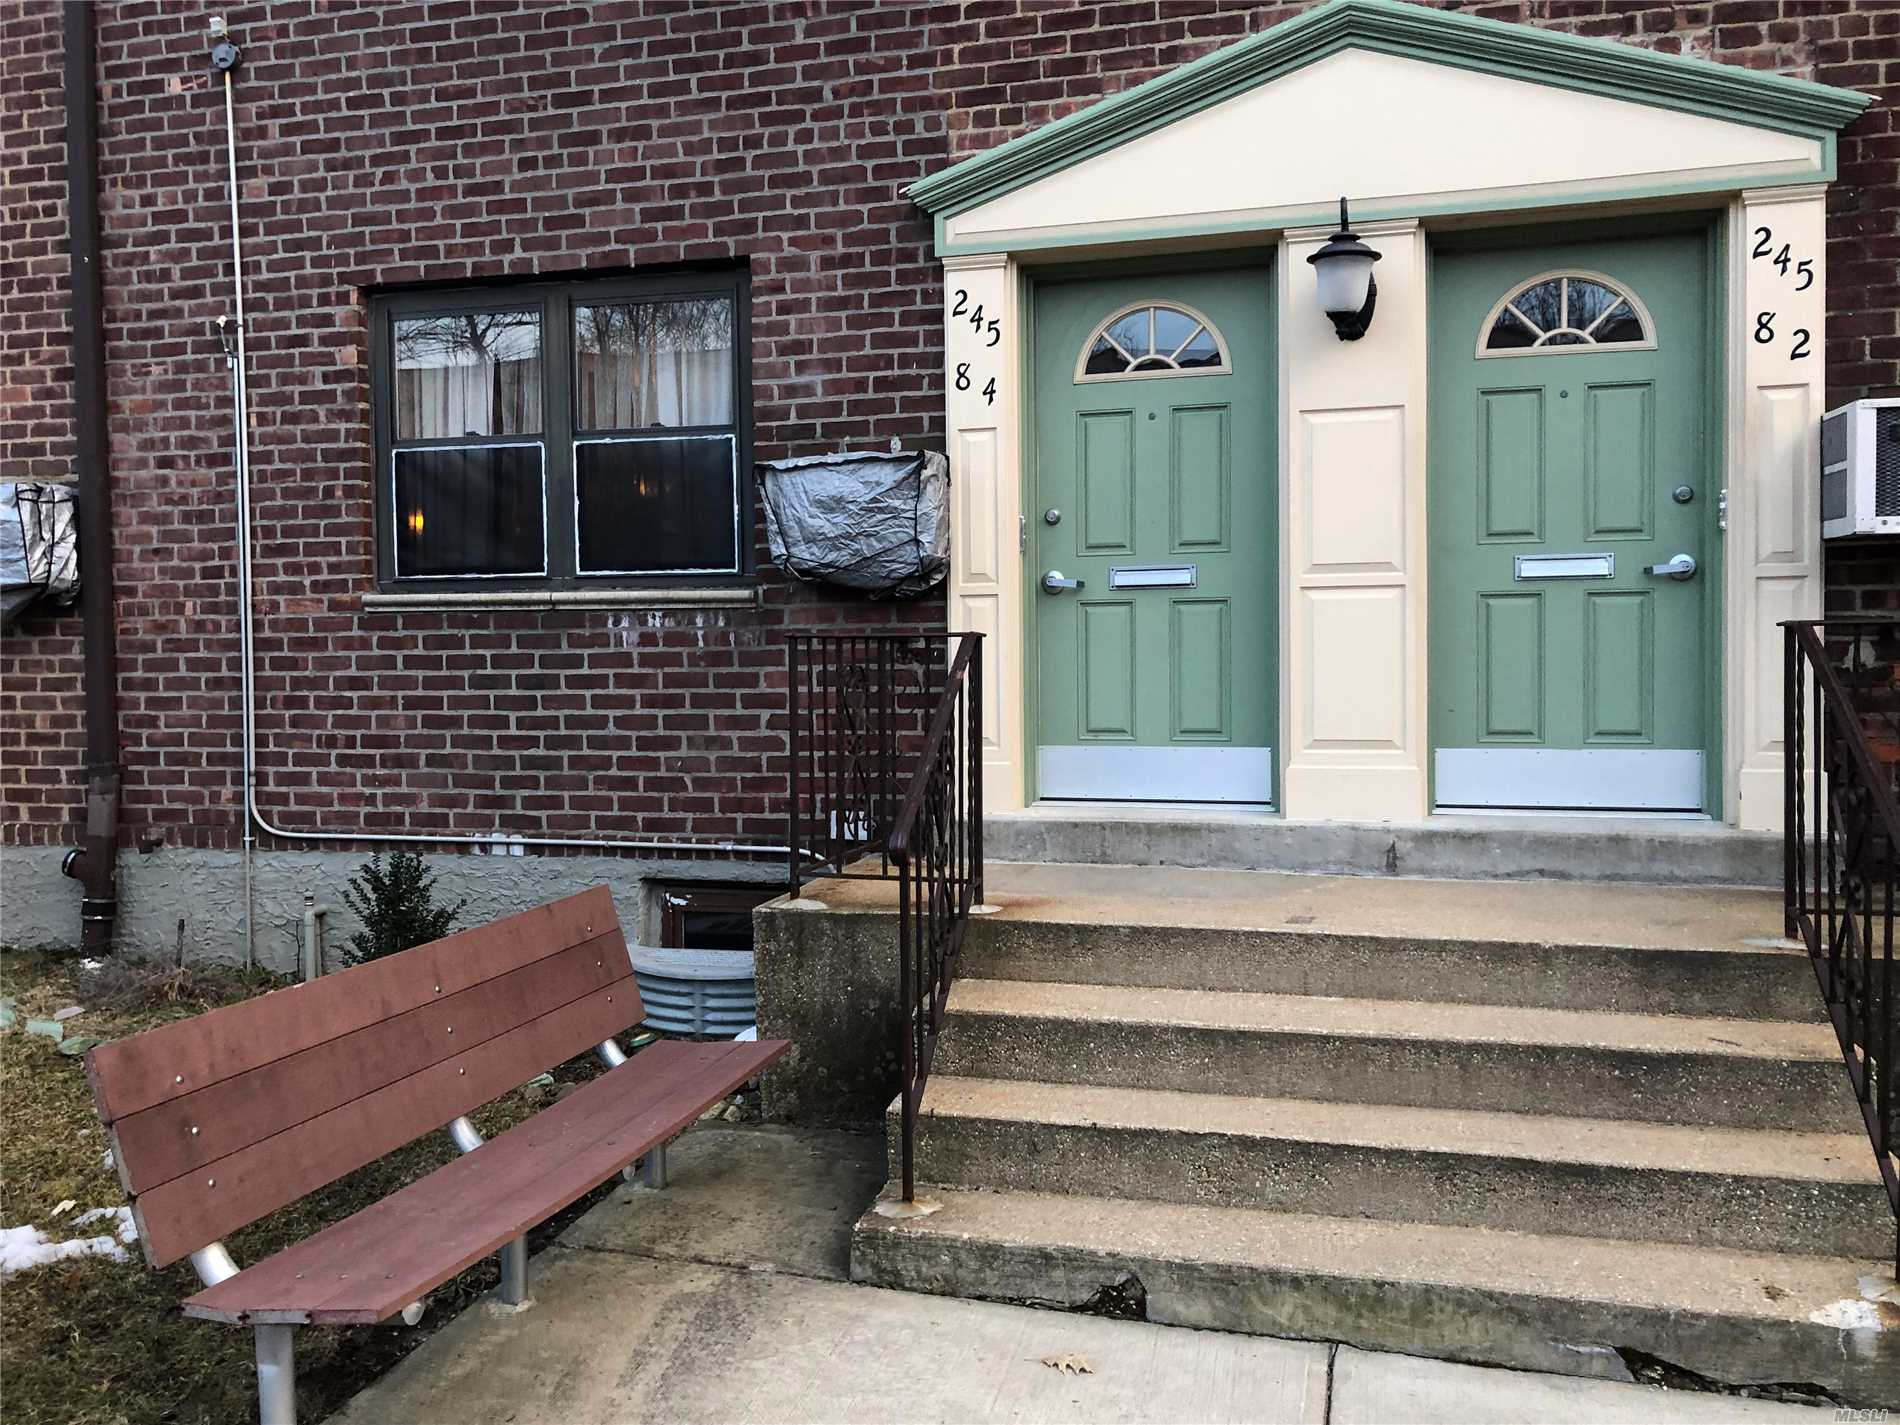 A beautiful 2 BR well kept co-op with a new kitchen and bathroom. Hardwood floors. Near by public transportation, access to all LI highways and shopping centers. Ground floor access to laundry nearby, 1 parking spot and storage. Options to purchase a garage space for 75$ additional fee.